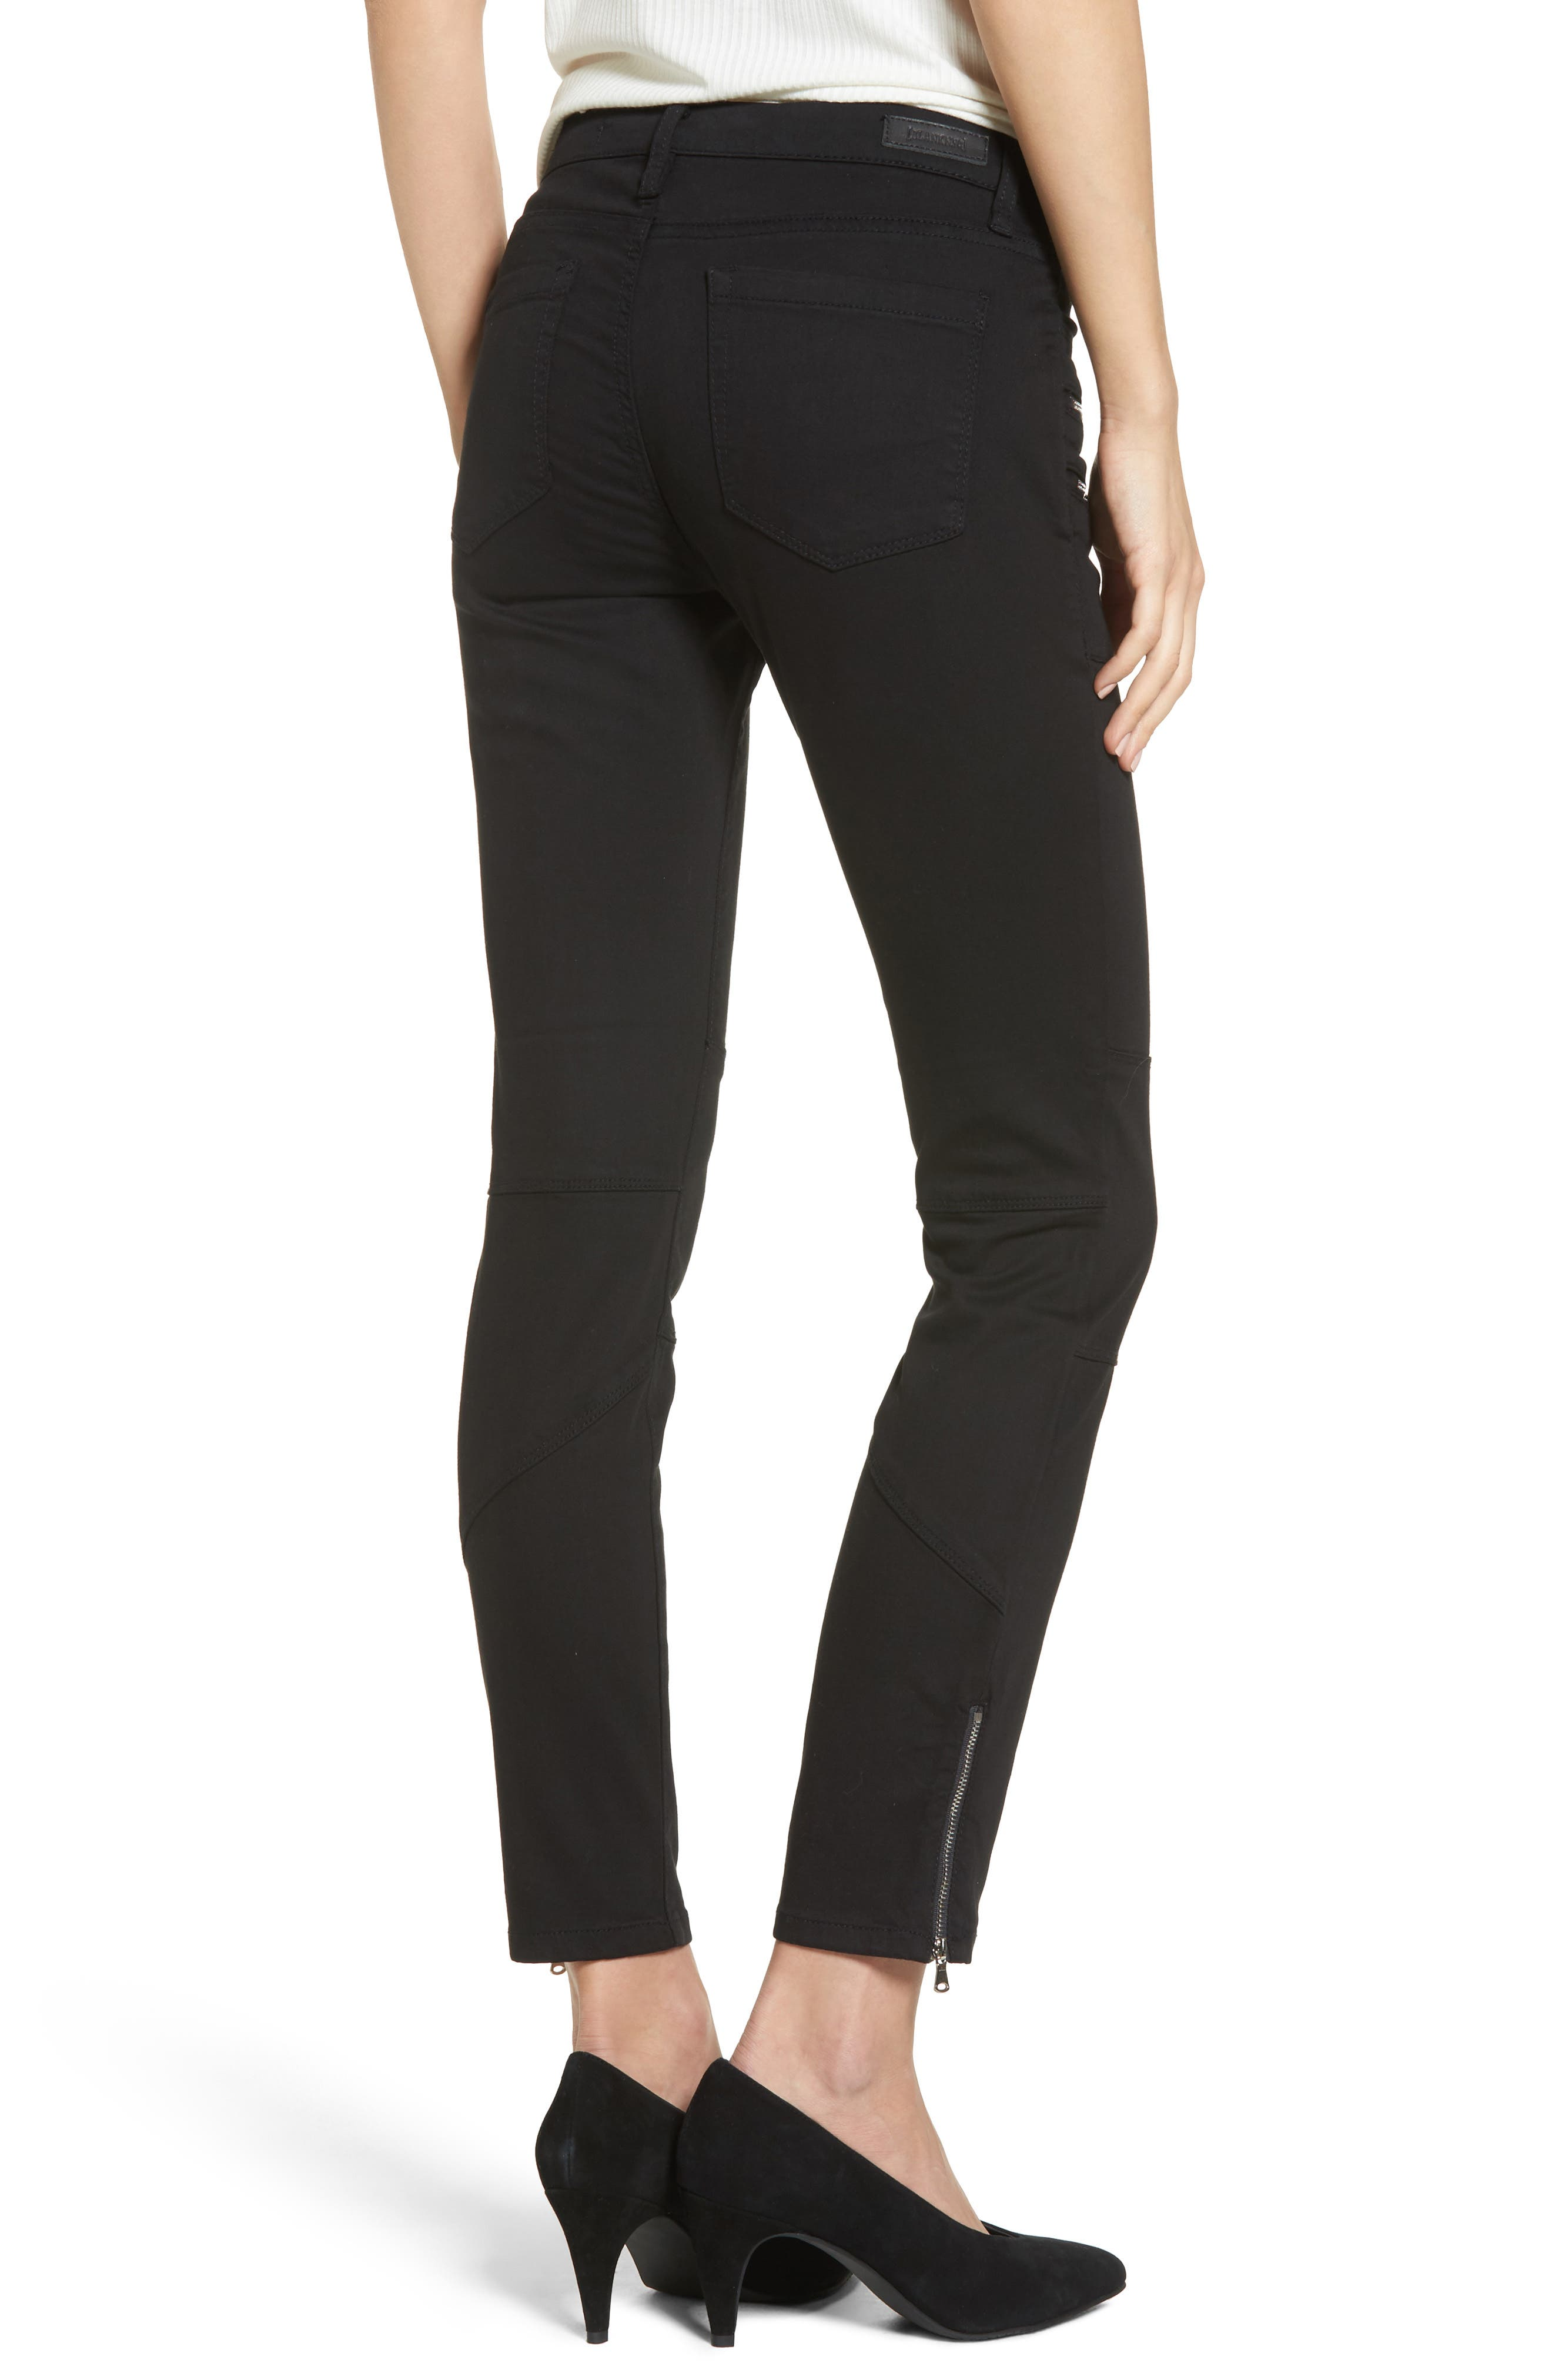 Private Party Skinny Jeans,                             Alternate thumbnail 2, color,                             001